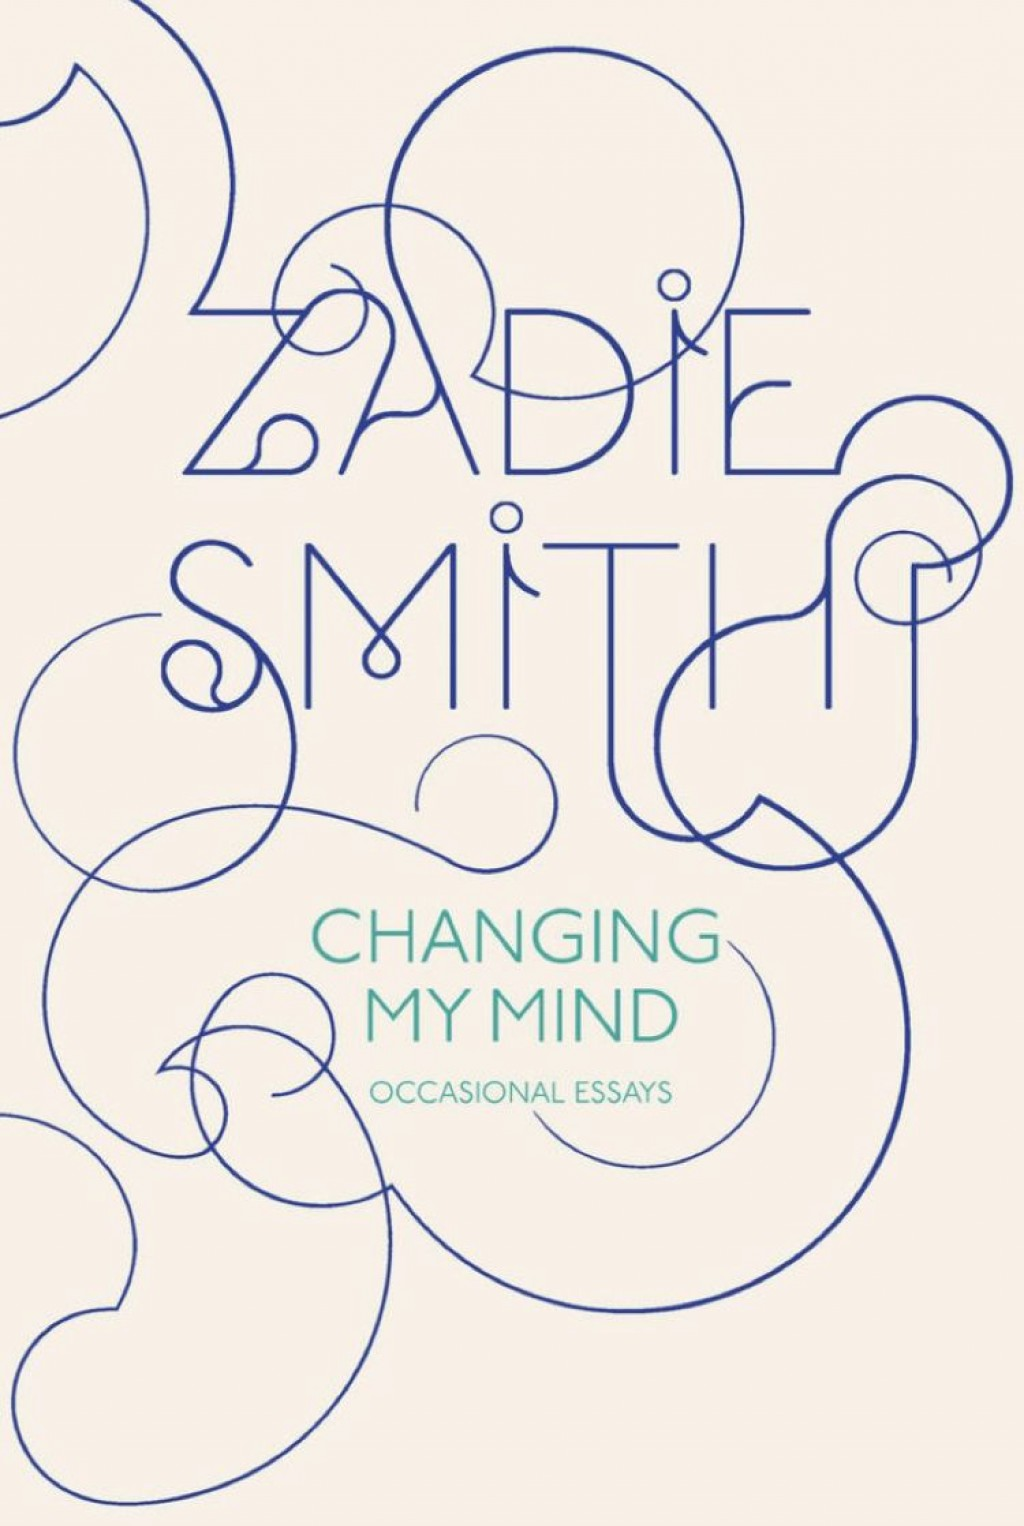 004 Essay Example Changing My Mind Occasional Essays Striking Pdf By Zadie Smith Large